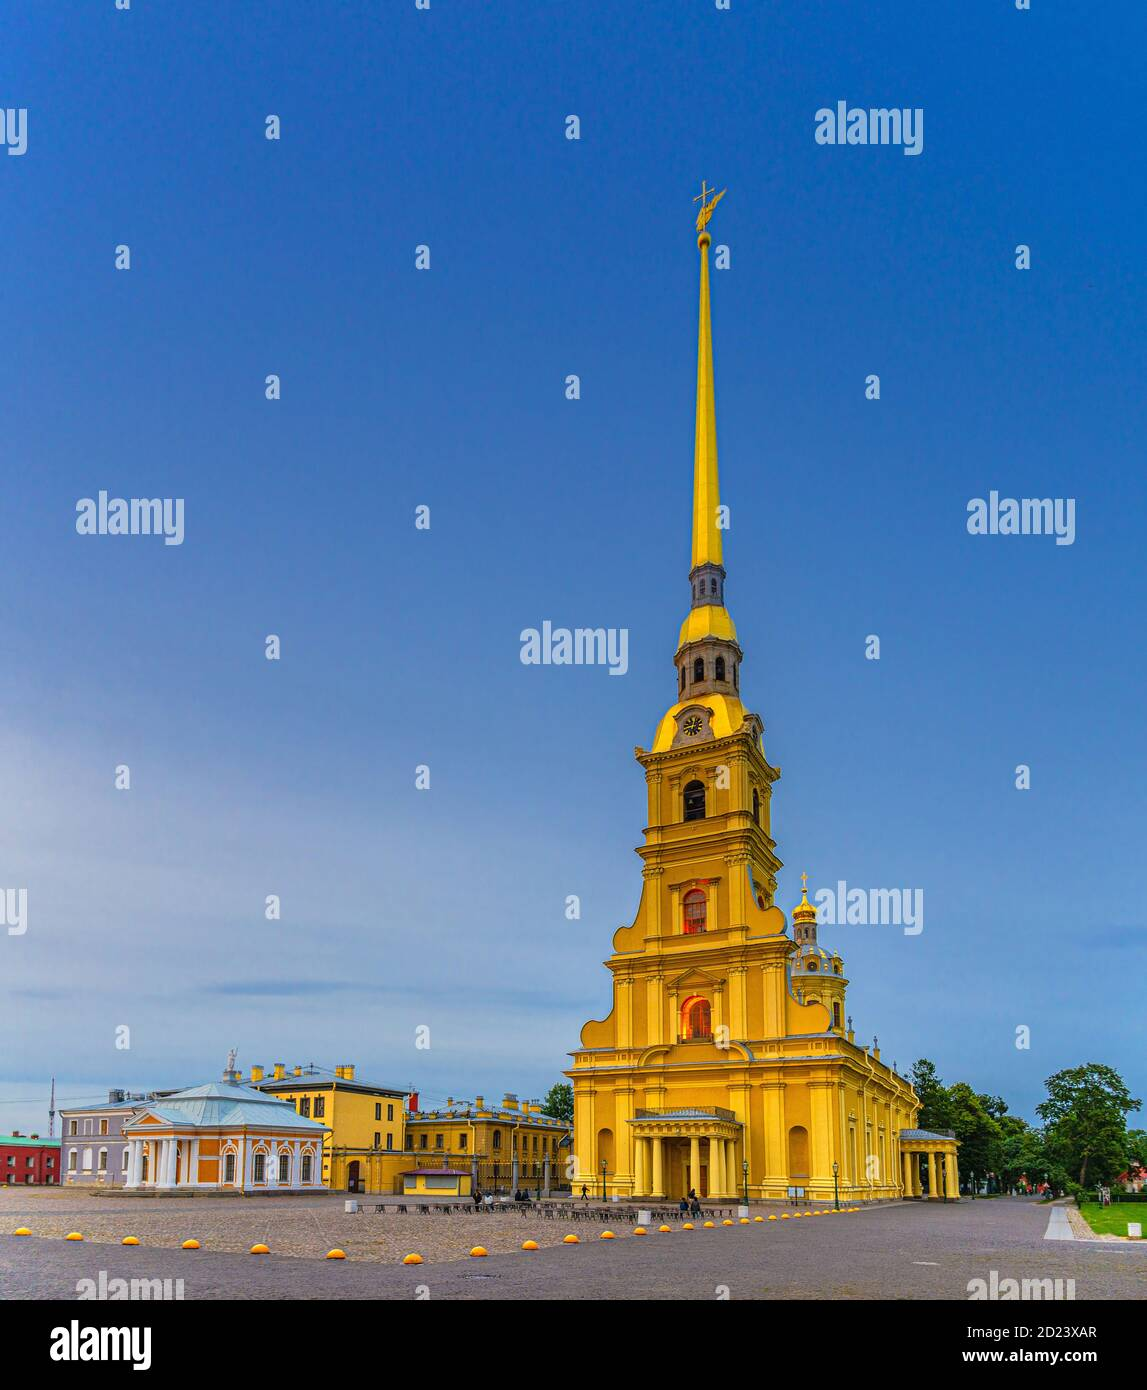 Saints Peter and Paul Cathedral Orthodox church with golden spire in Peter and Paul Fortress citadel on Zayachy Hare Island, evening dusk twilight view, Saint Petersburg Leningrad city, Russia Stock Photo